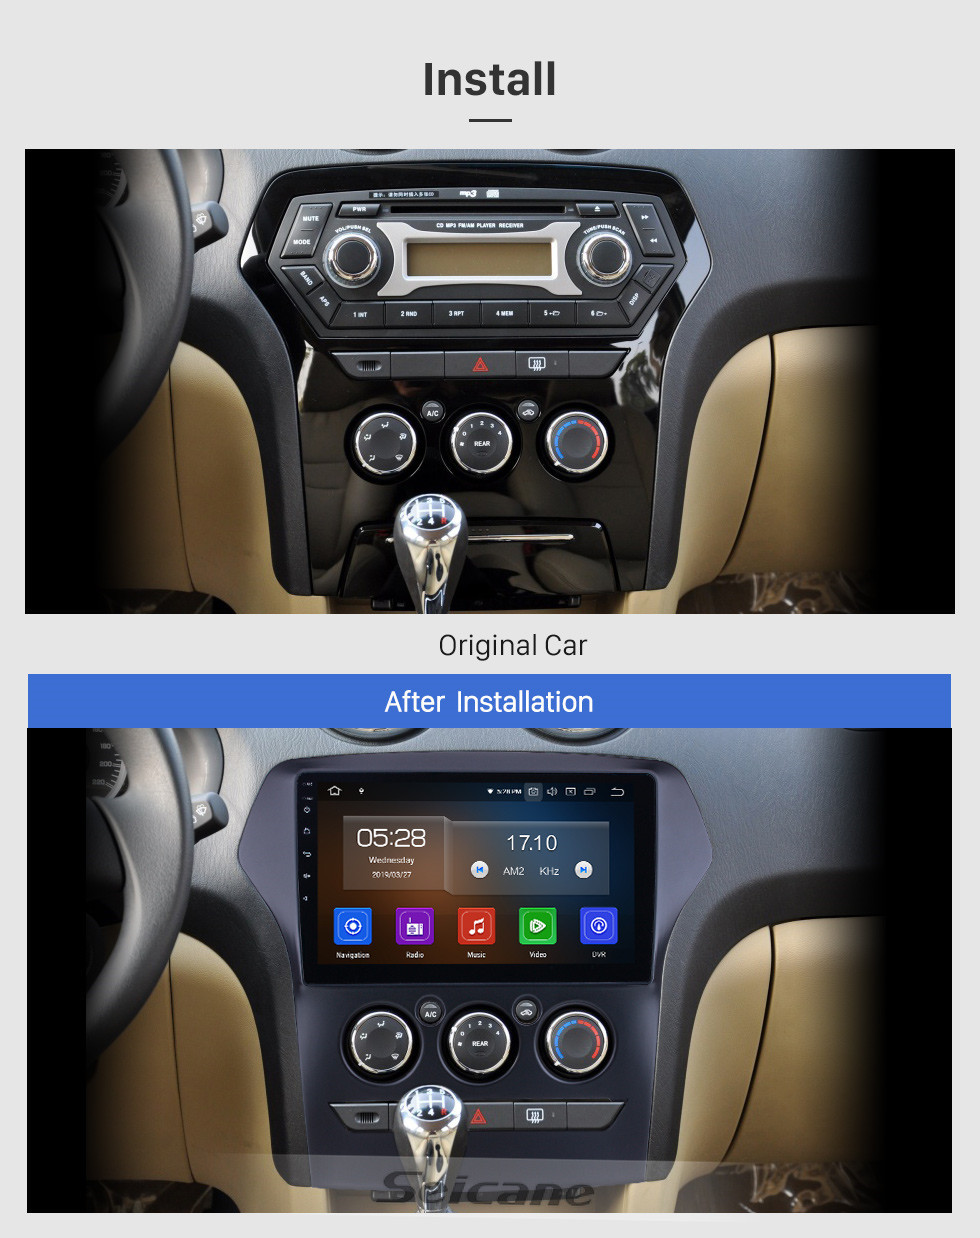 Seicane 10.1 inch For 2011 JMC Old Yusheng Radio Android 10.0 GPS Navigation Bluetooth HD Touchscreen Carplay support OBD2